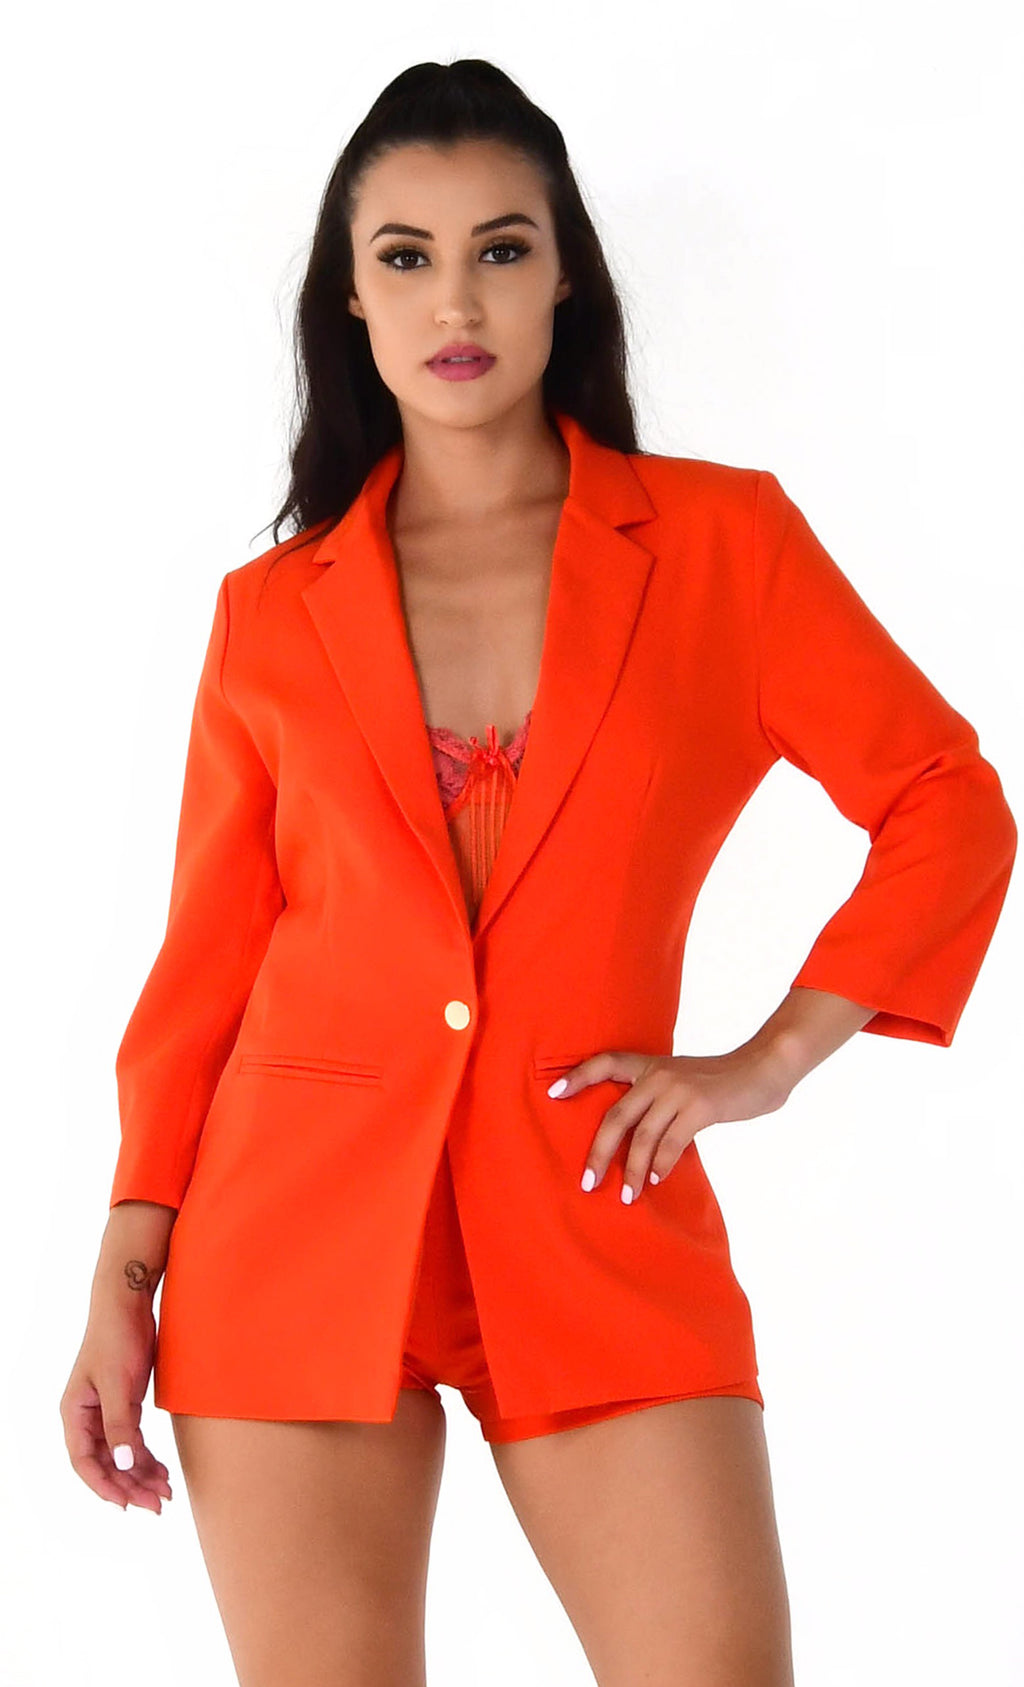 She's A '80s Lady Red Orange 3/4 Sleeve Button Blazer High Waist Short Two Piece Set Romper